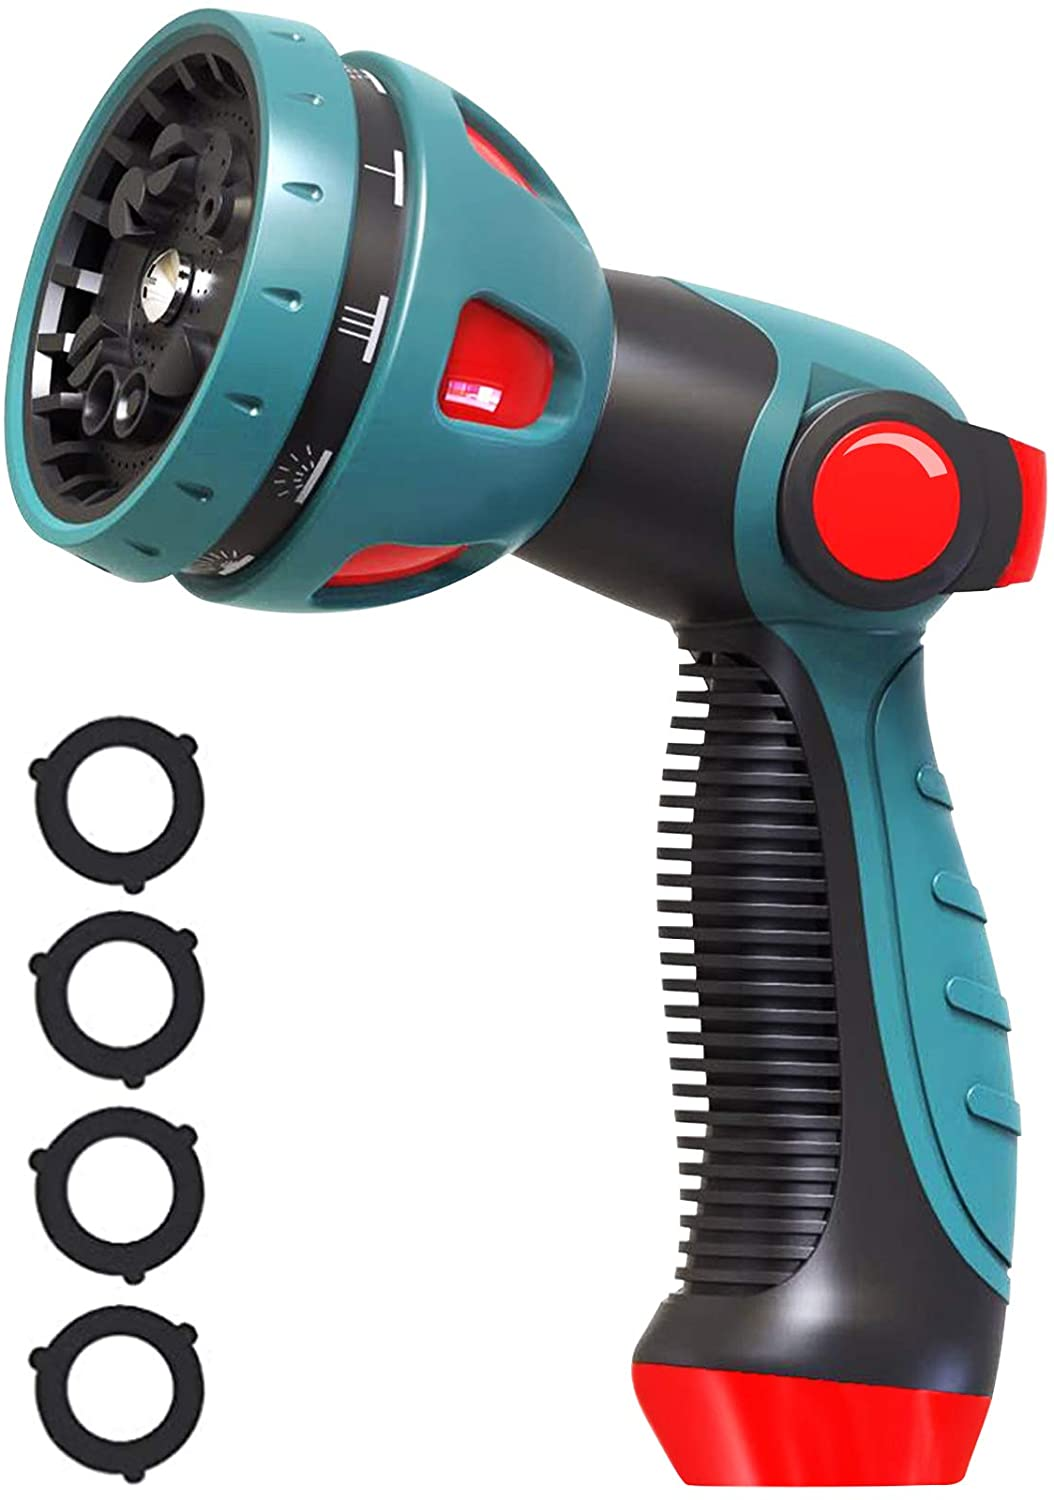 Garden Hose Nozzle, Metal Water Hose Nozzle Heavy Duty 10 Patterns Hose Spray Nozzle with Thumb Control for Watering Lawns,Car washing,Bathing Pets